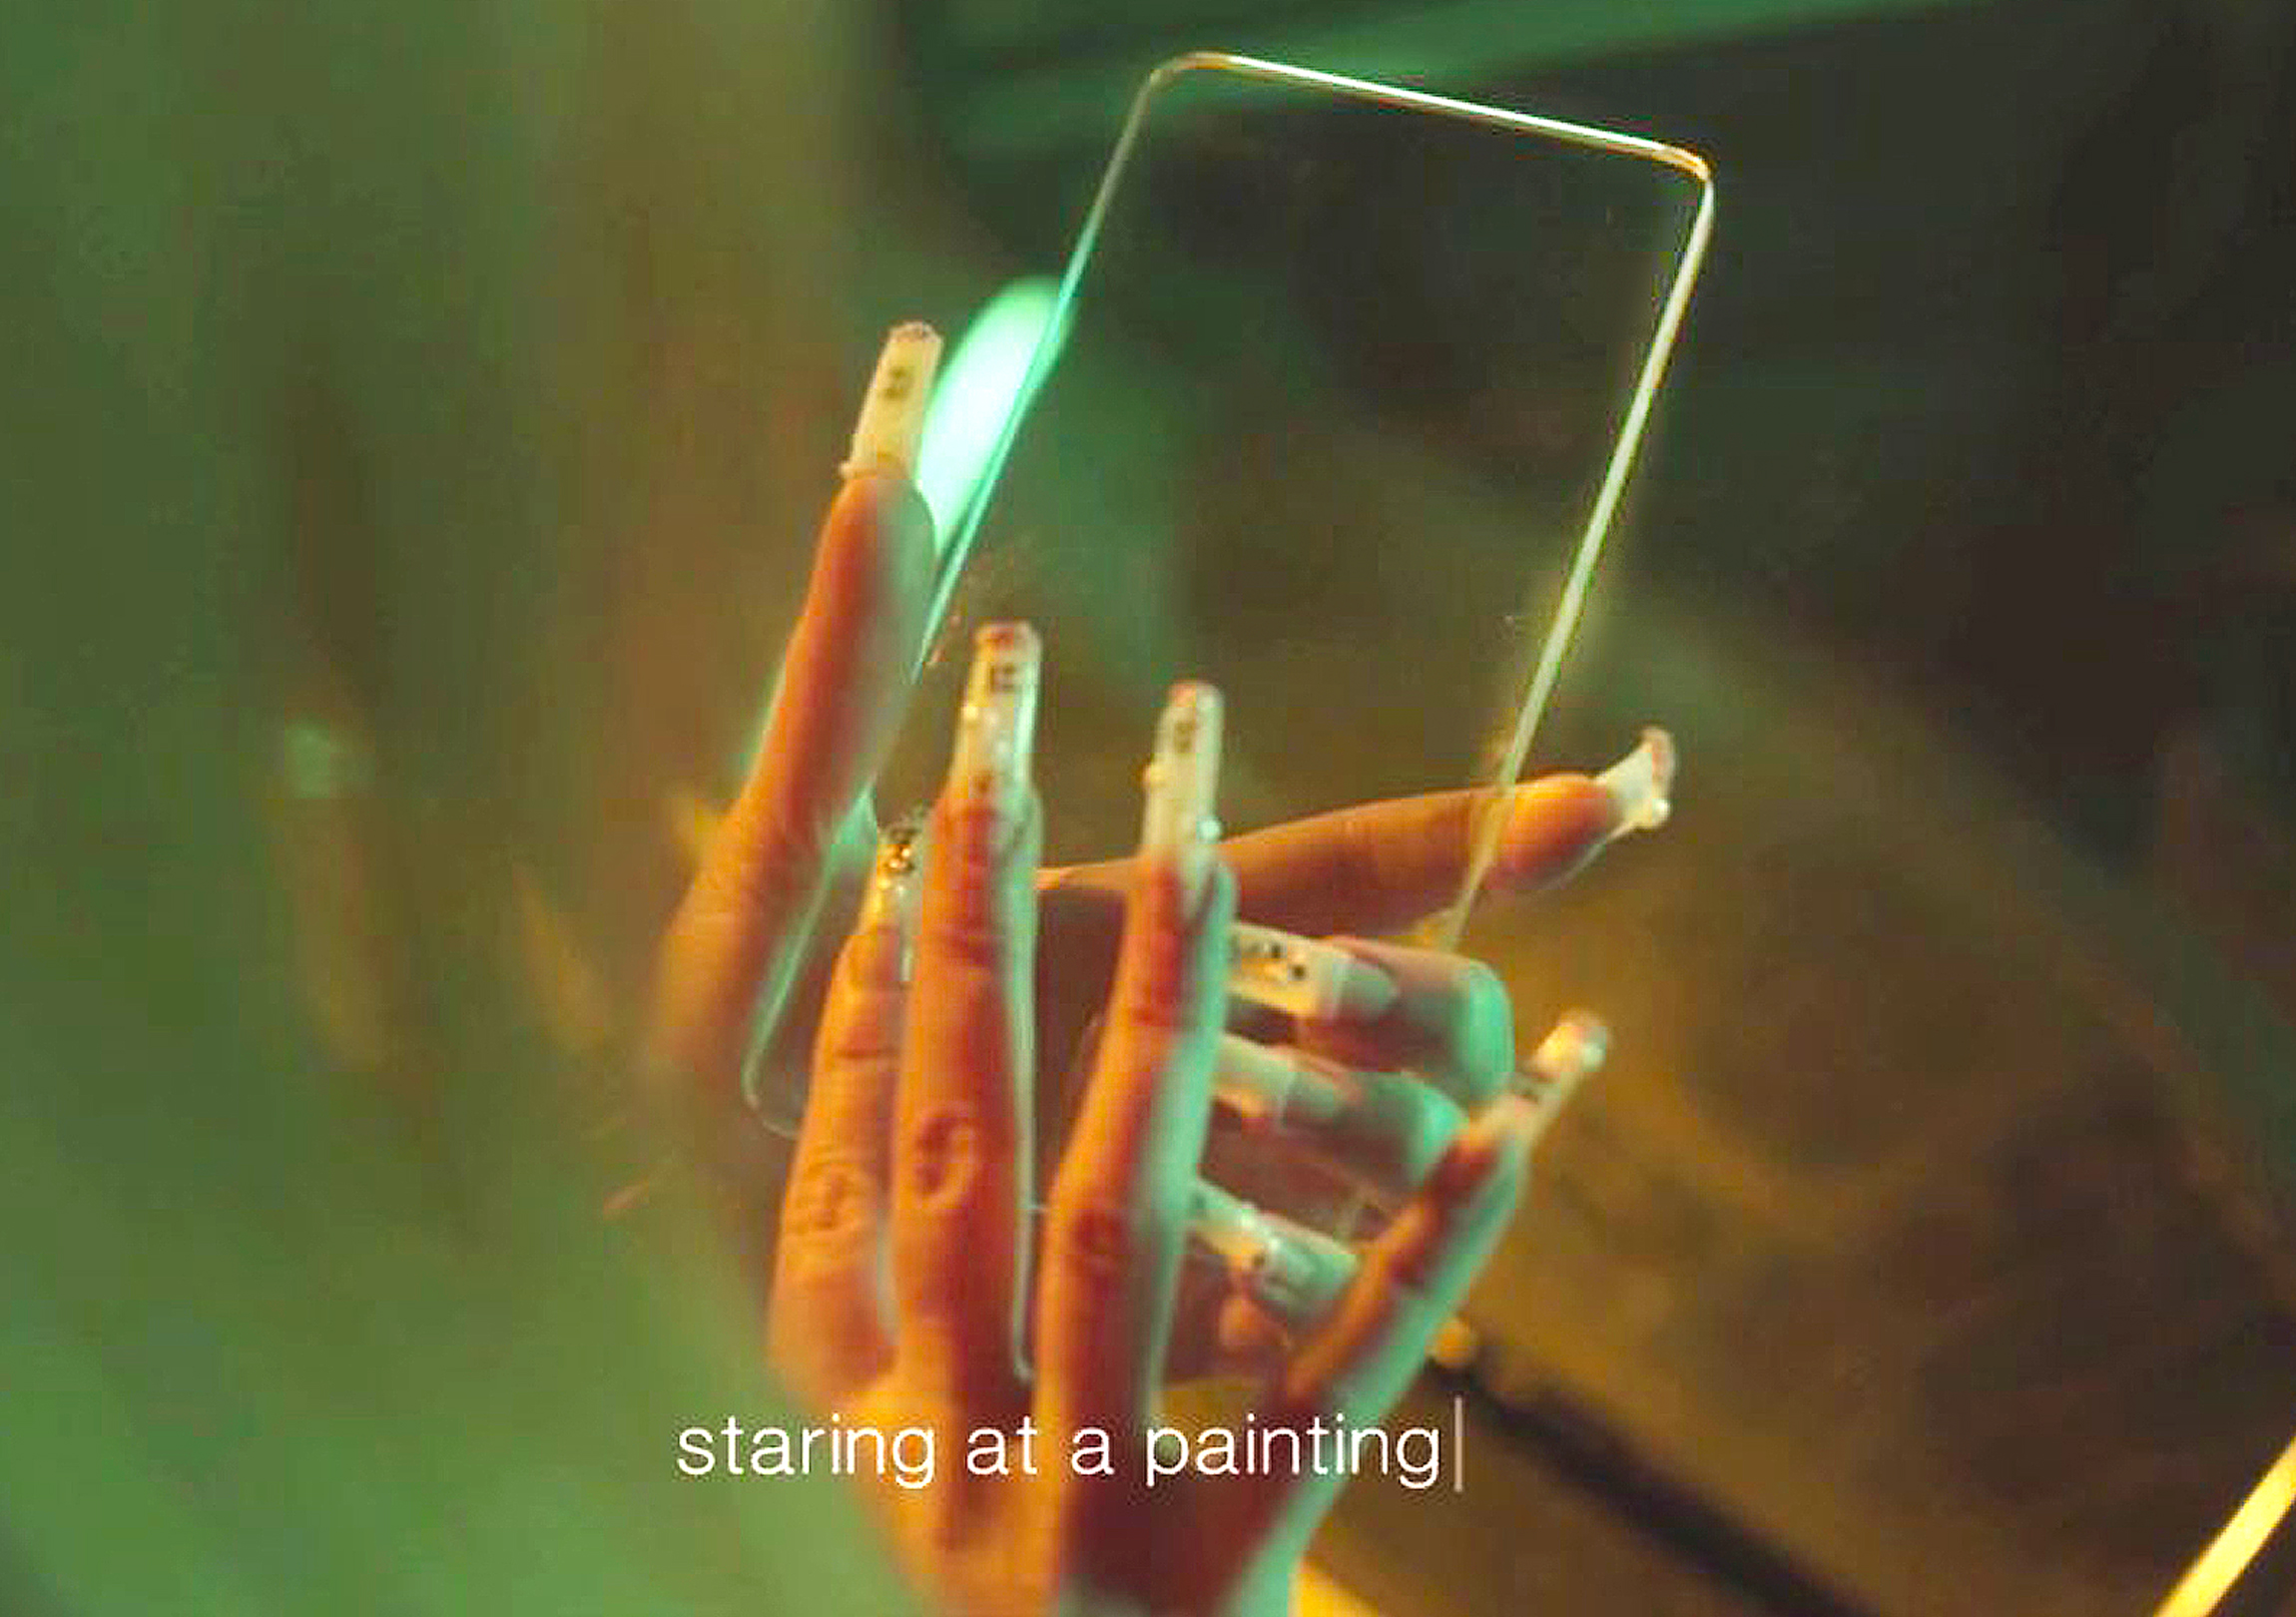 GlassPhone, narrative devices ( video still ), 9th berlin biennale, 2016, ( produced by iconoclast )